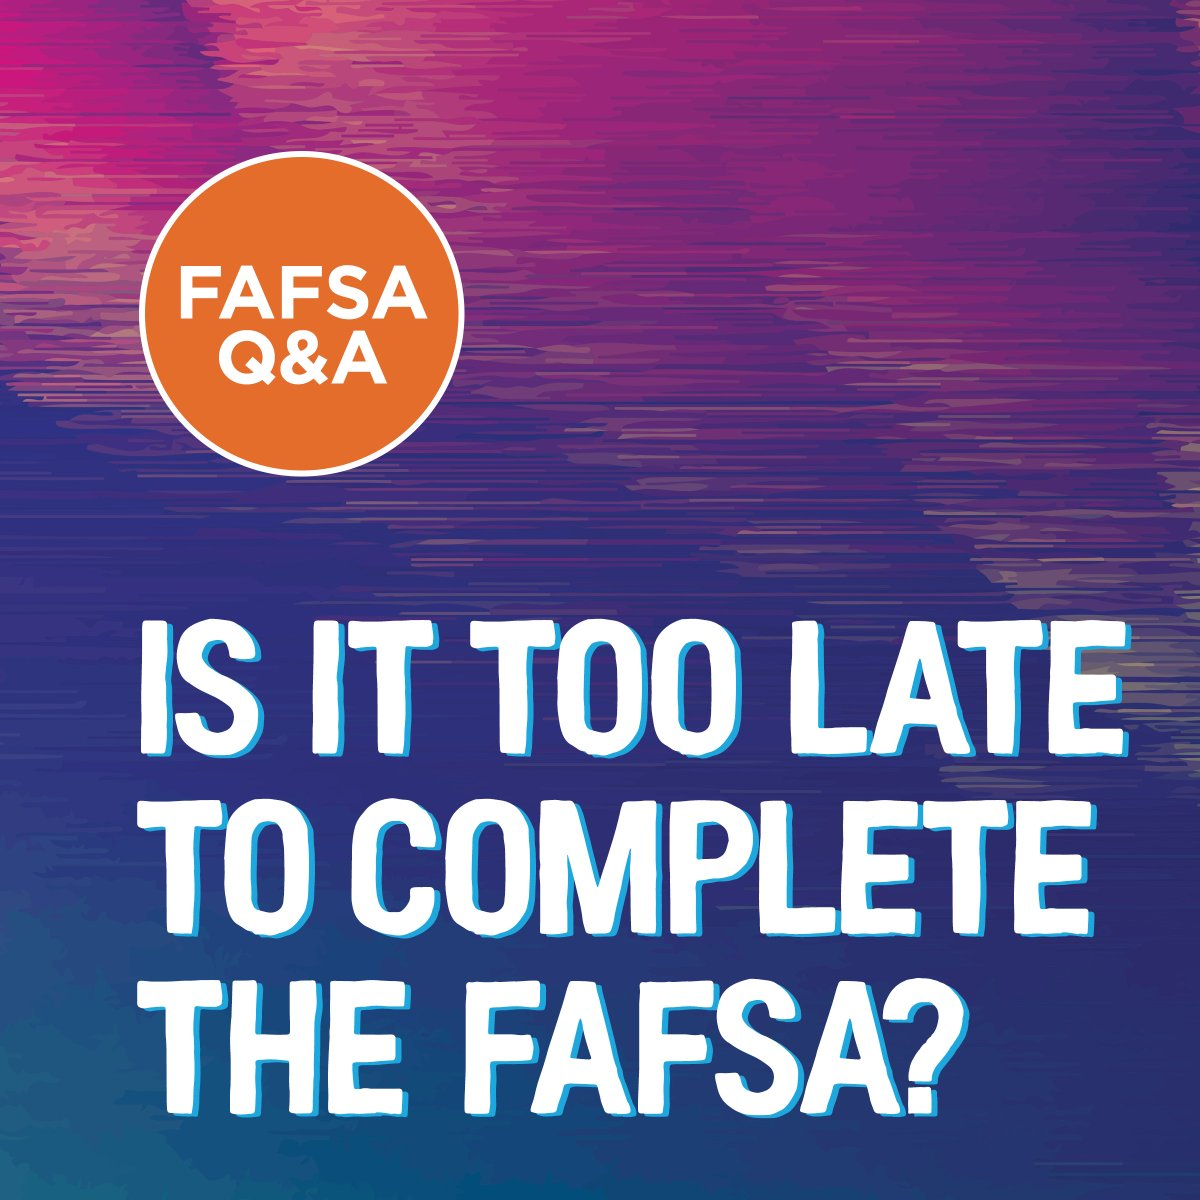 Not at all, but don't delay! The deadlines for some types of financial aid are fast approaching!   Have questions? Call us.  #college #FAFSA #FinancialAid